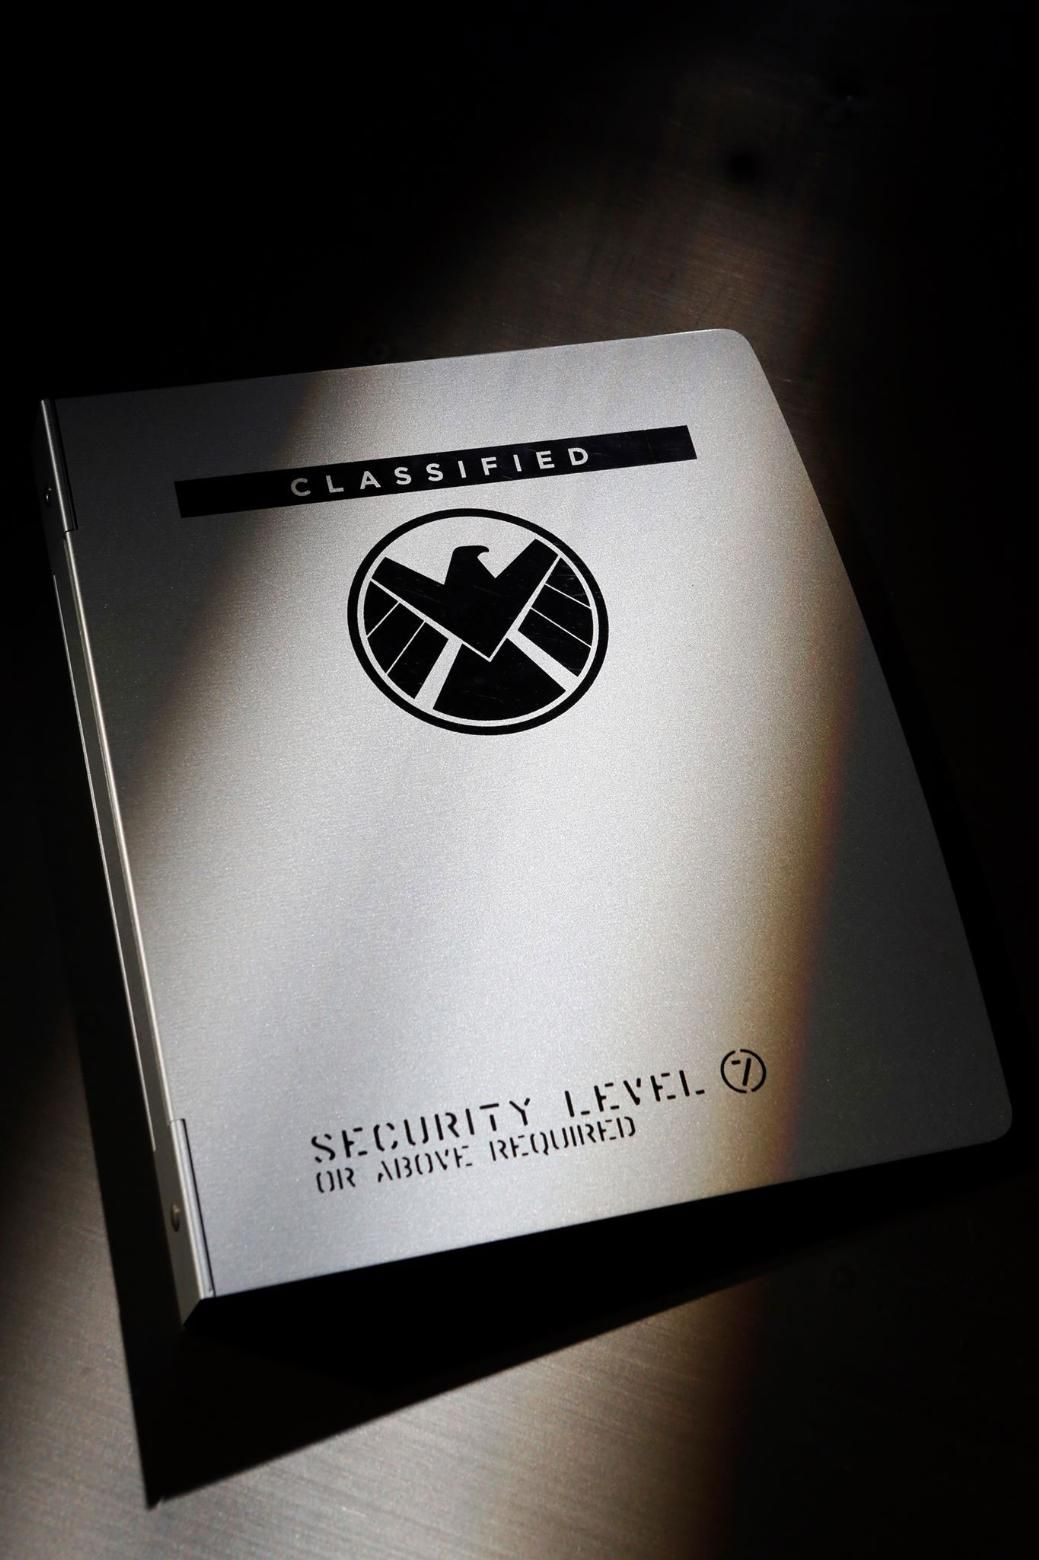 COMIC-CON 2013: 'Marvel's Agents of S H I E L D ' Security